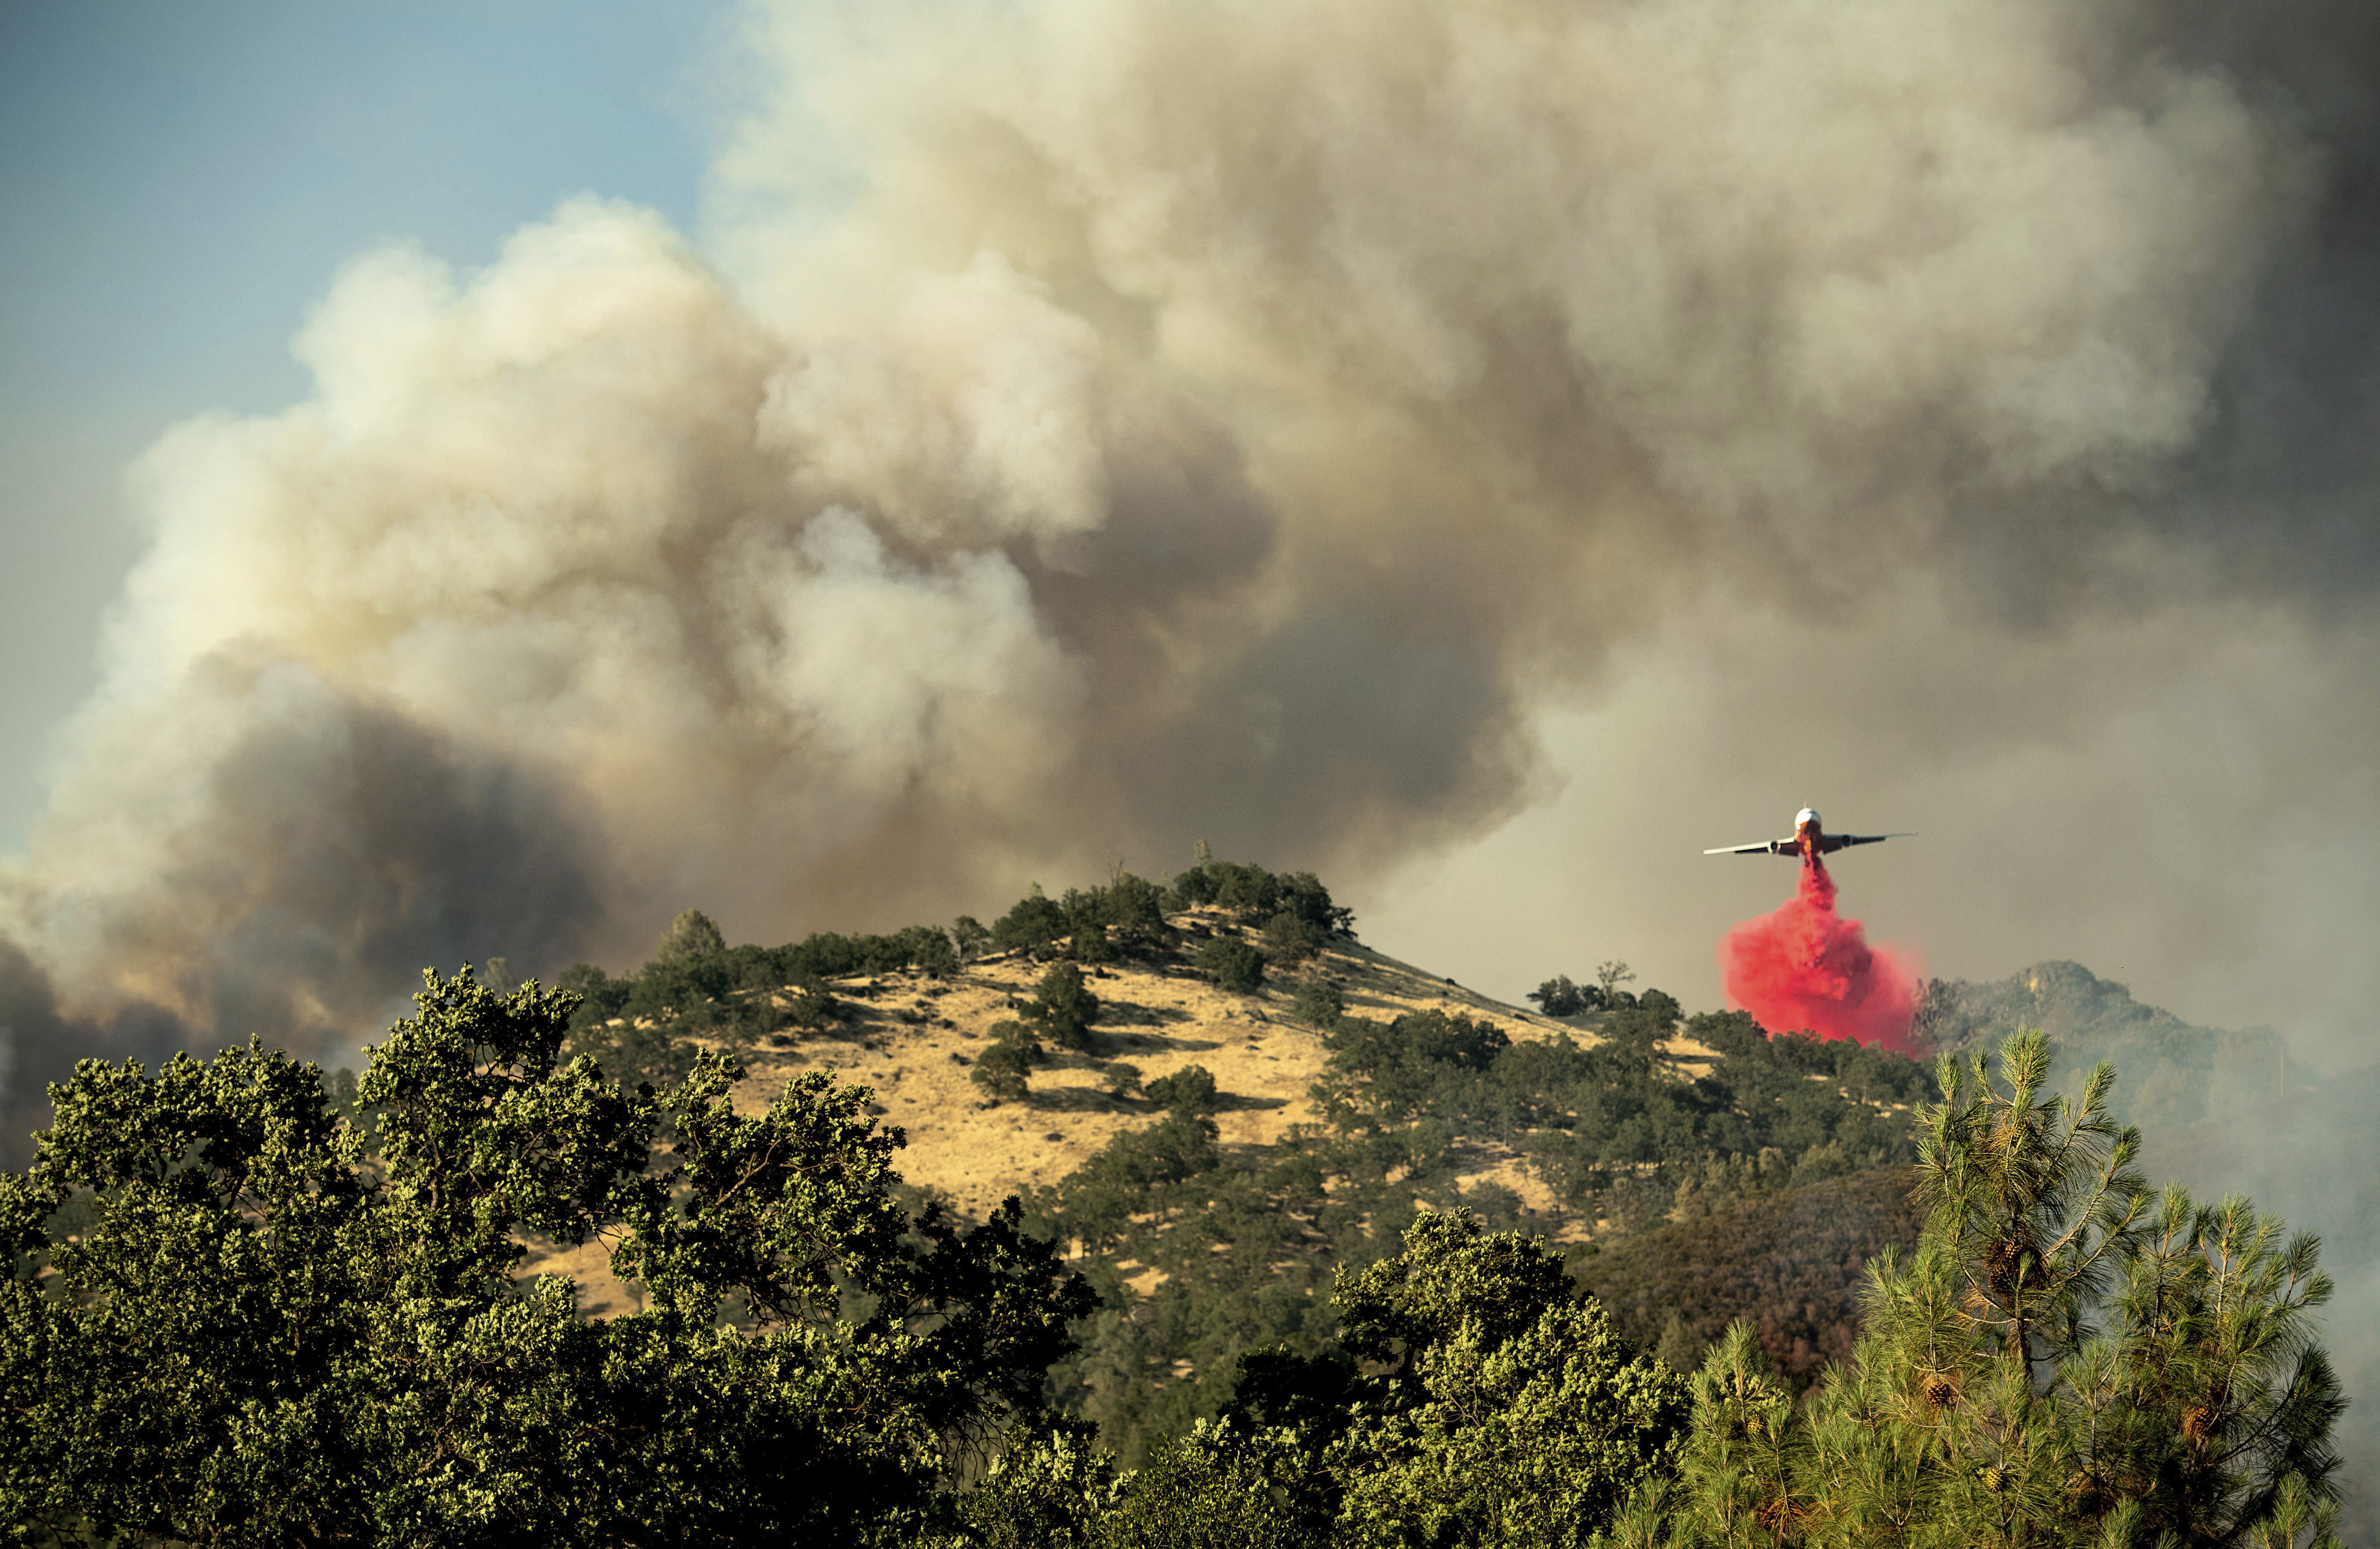 <p>An air tanker drops retardant on a wildfire above the Spring Lakes community on Sunday, June 24, 2018., near Clearlake Oaks, Calif. Wind-driven wildfires destroyed buildings and threatened hundreds of others Sunday as they raced across dry brush in rural Northern California. (Photo: Noah Berger/AP) </p>